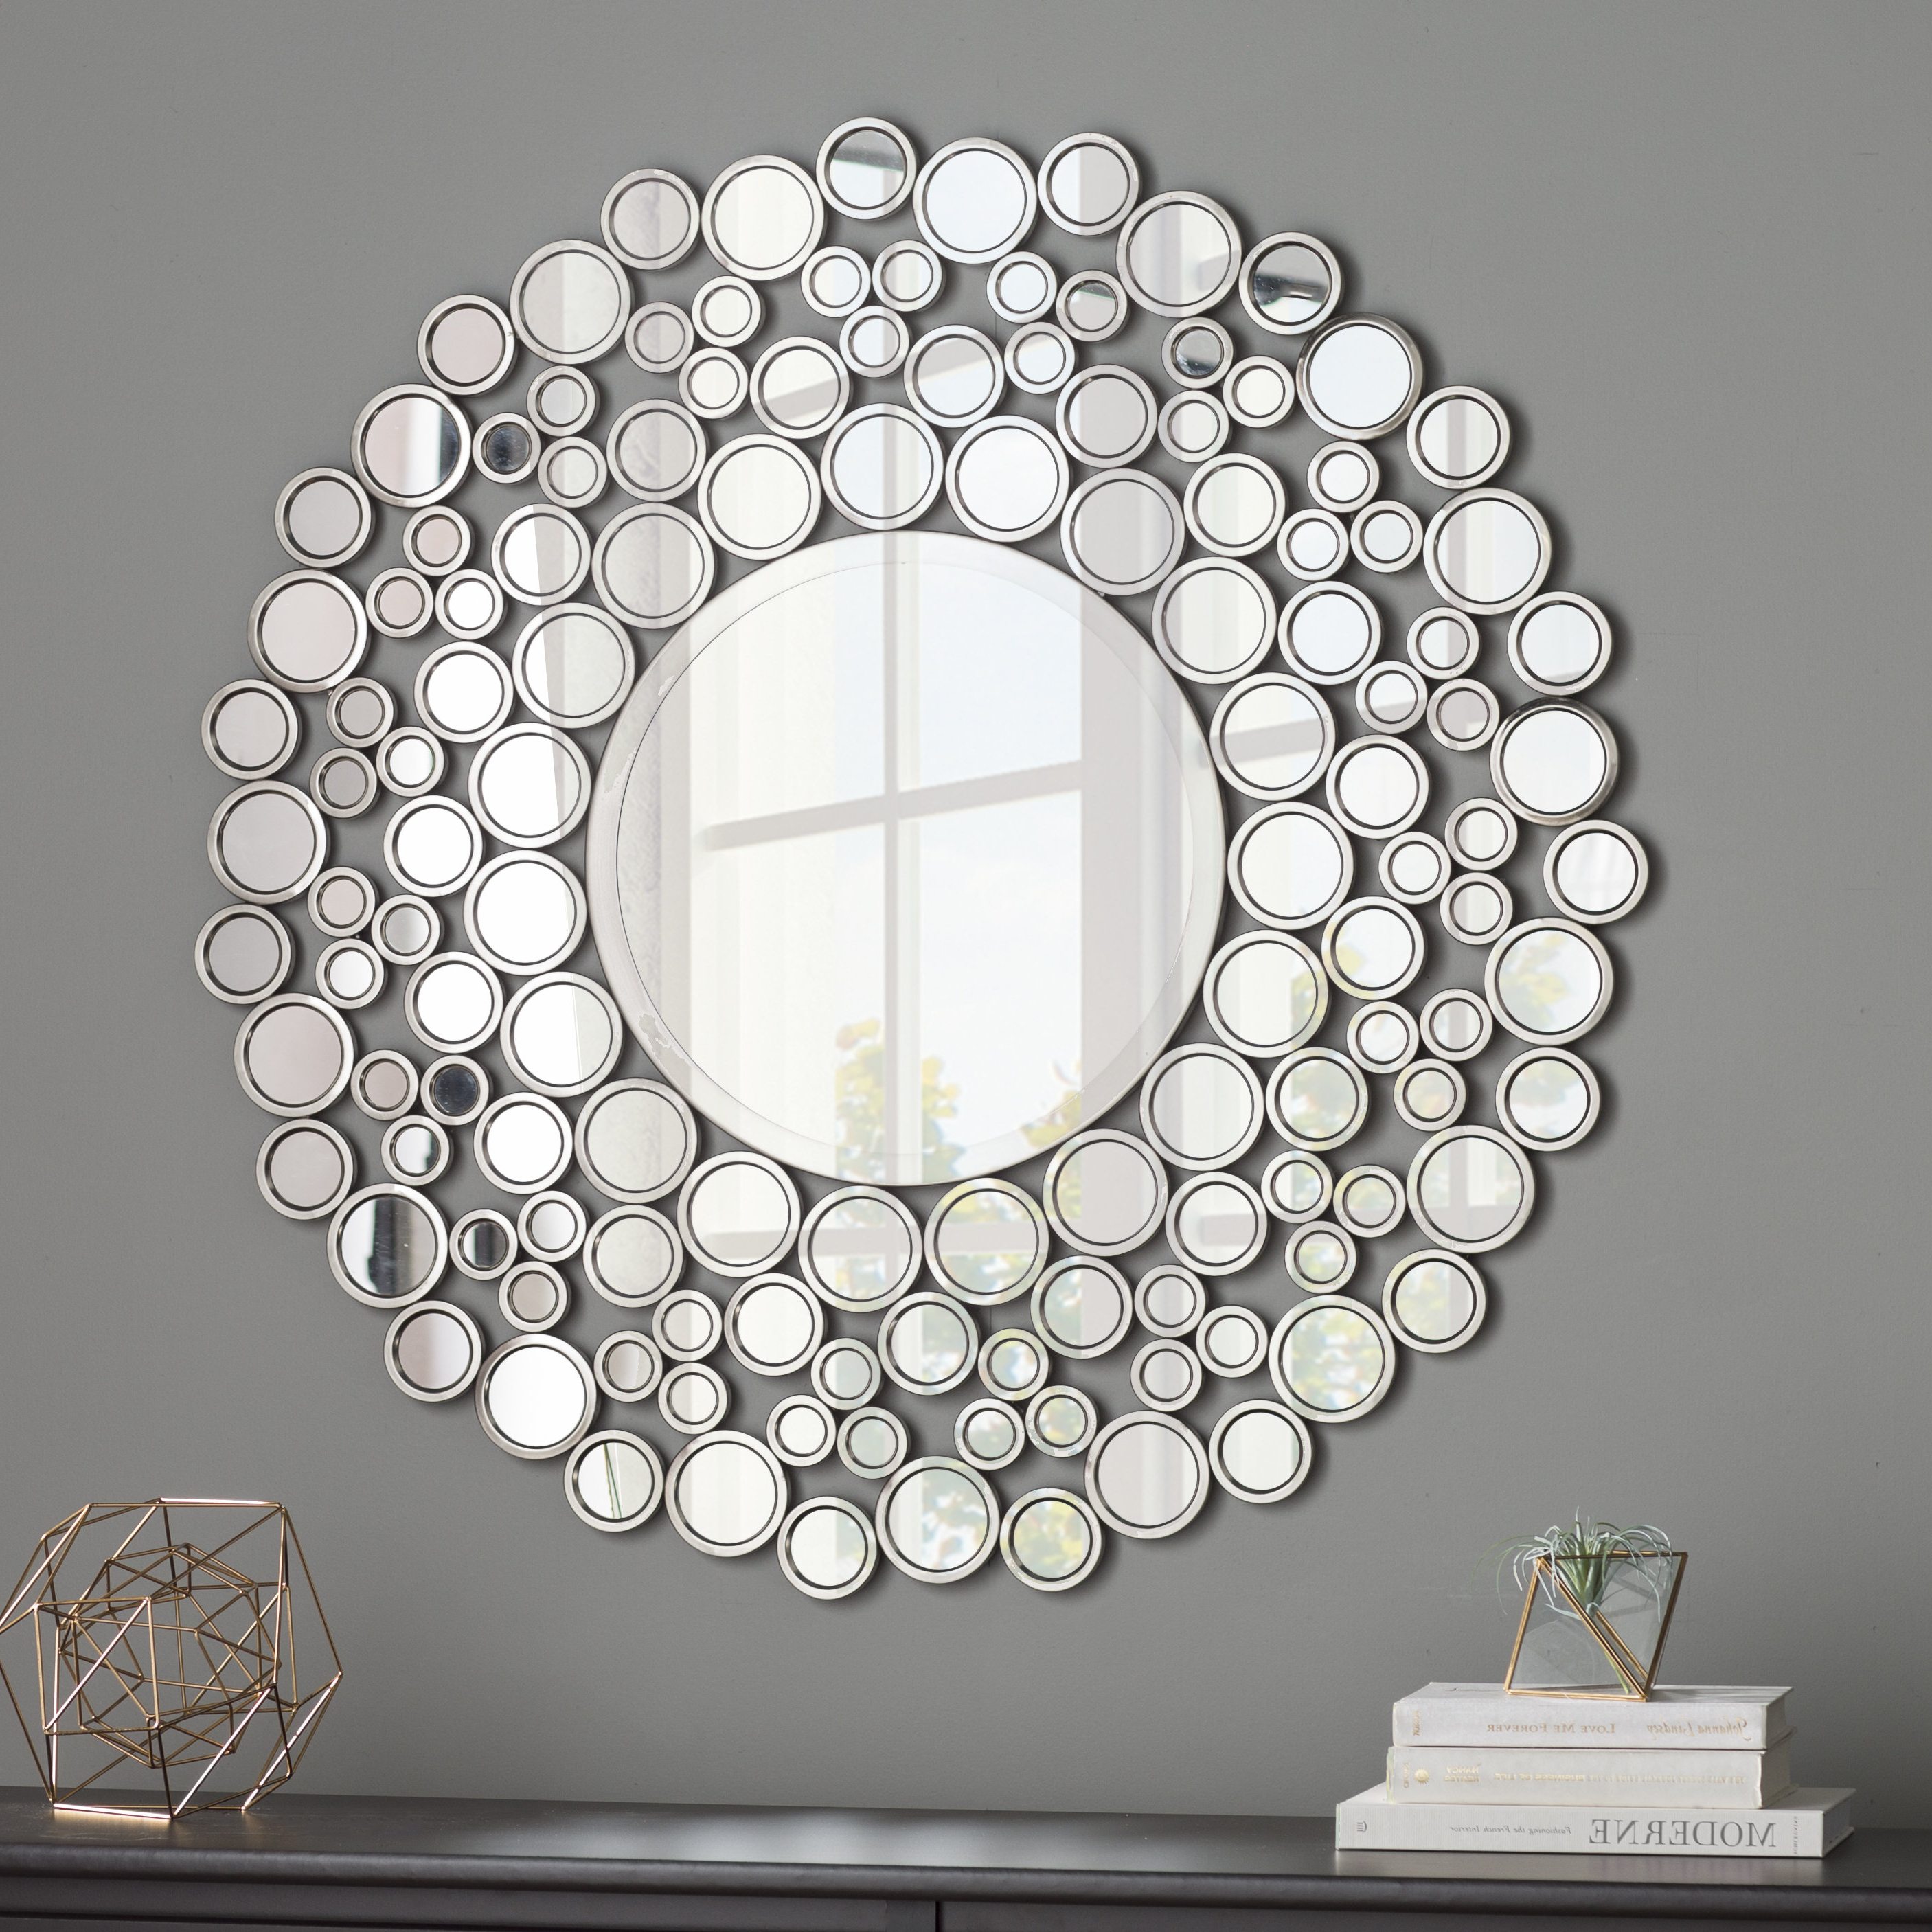 Wrought Studio Kentwood Round Wall Mirror Within Most Current Tata Openwork Round Wall Mirrors (View 13 of 20)